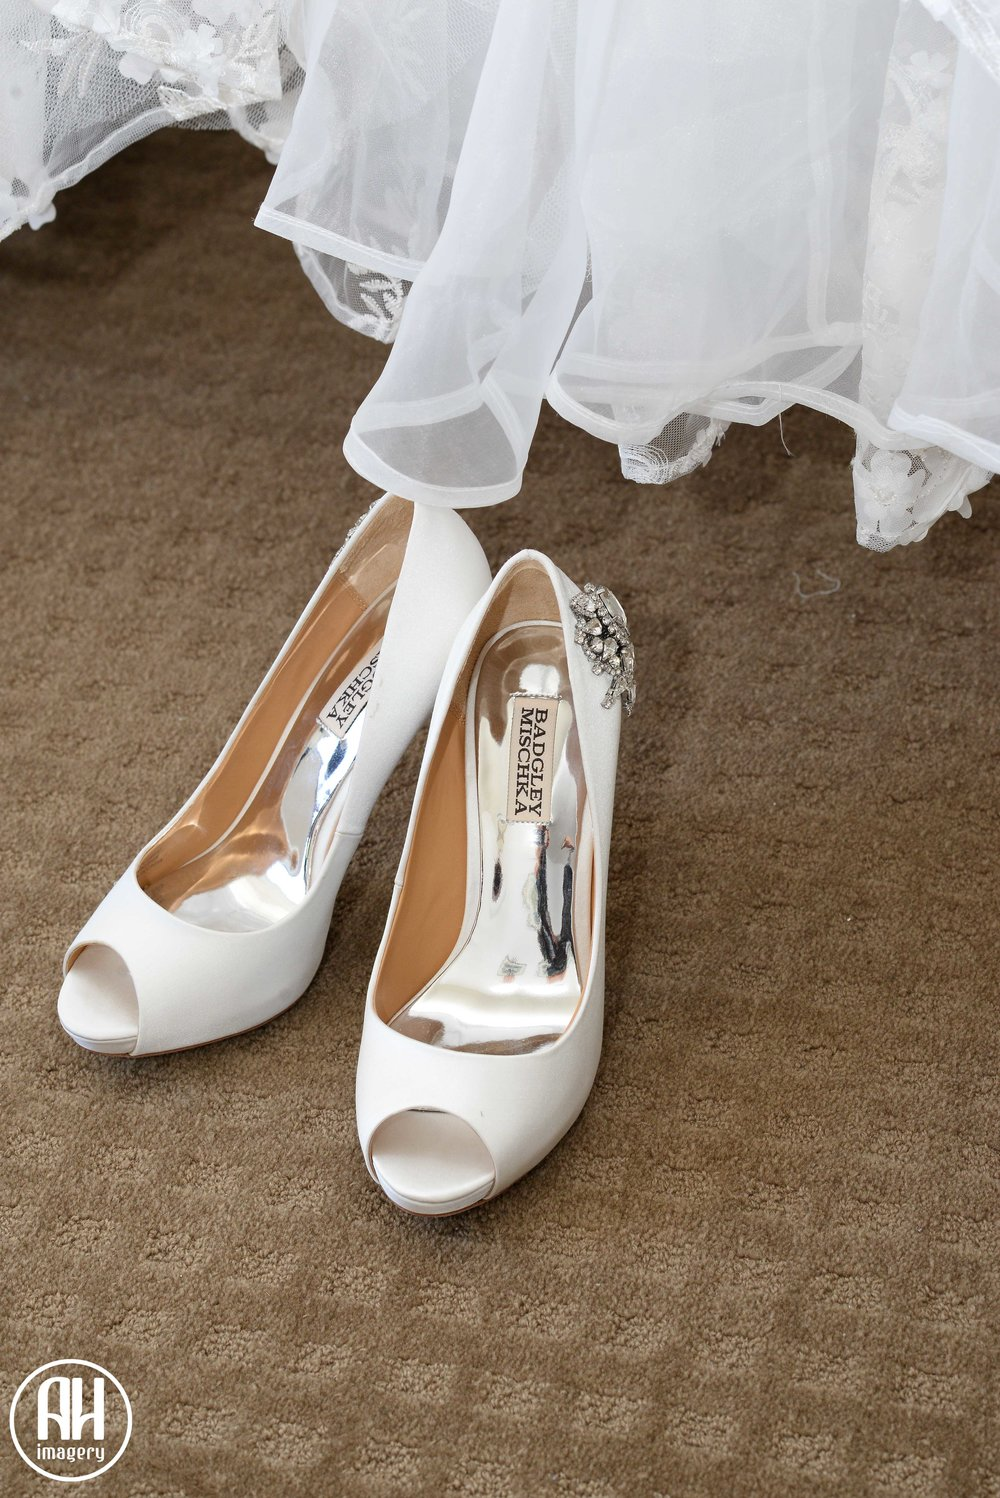 Wedding shoes and wedding dress at Watsons Bay Hotel before the wedding